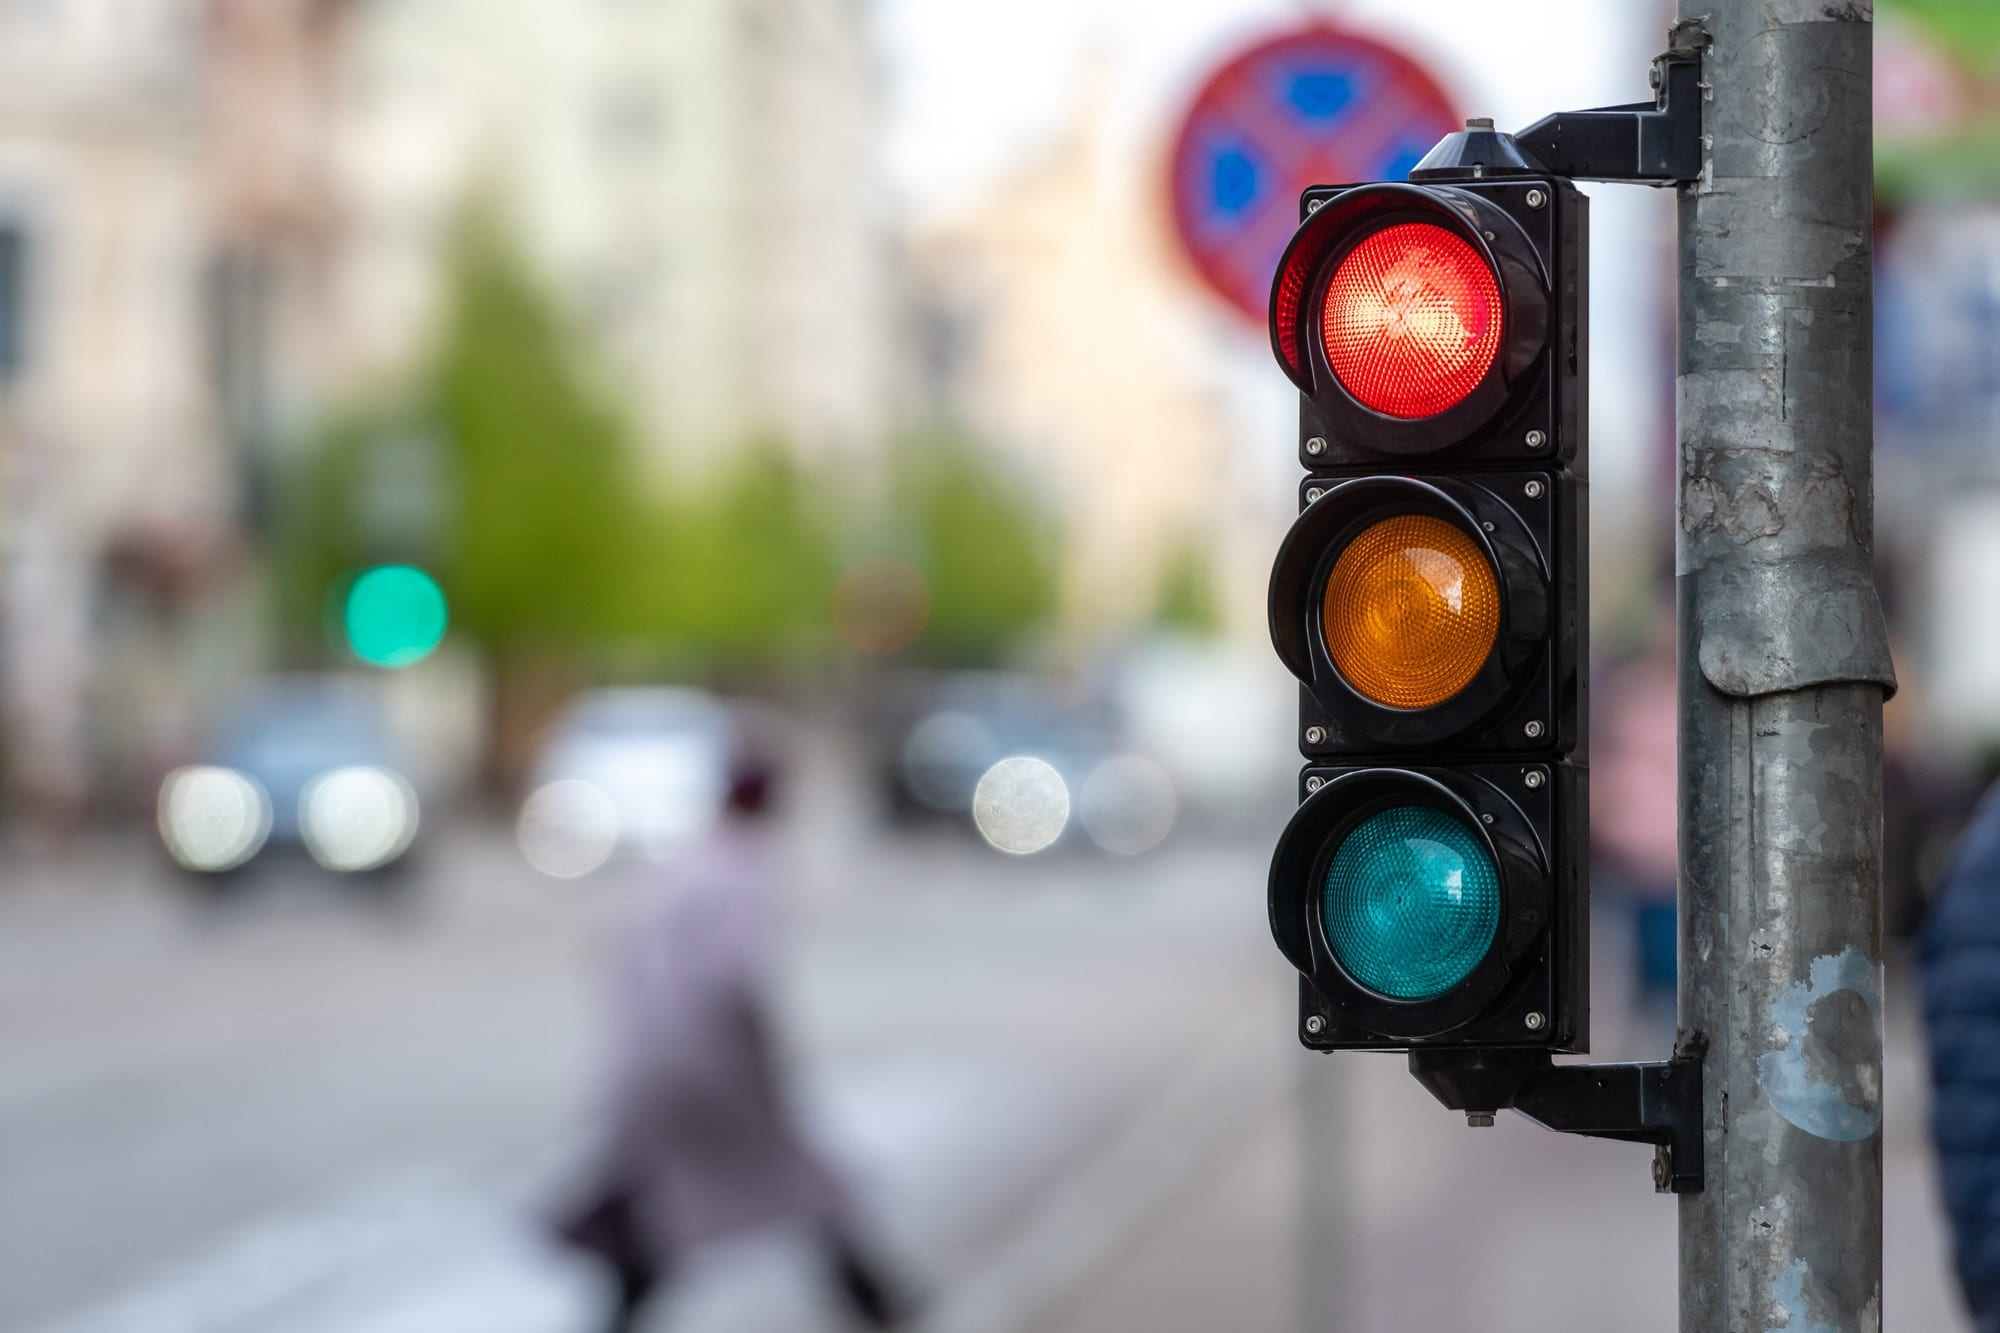 A city crossing with a semaphore. Red light in semaphore. light, semaphore, city, traffic, safety, s